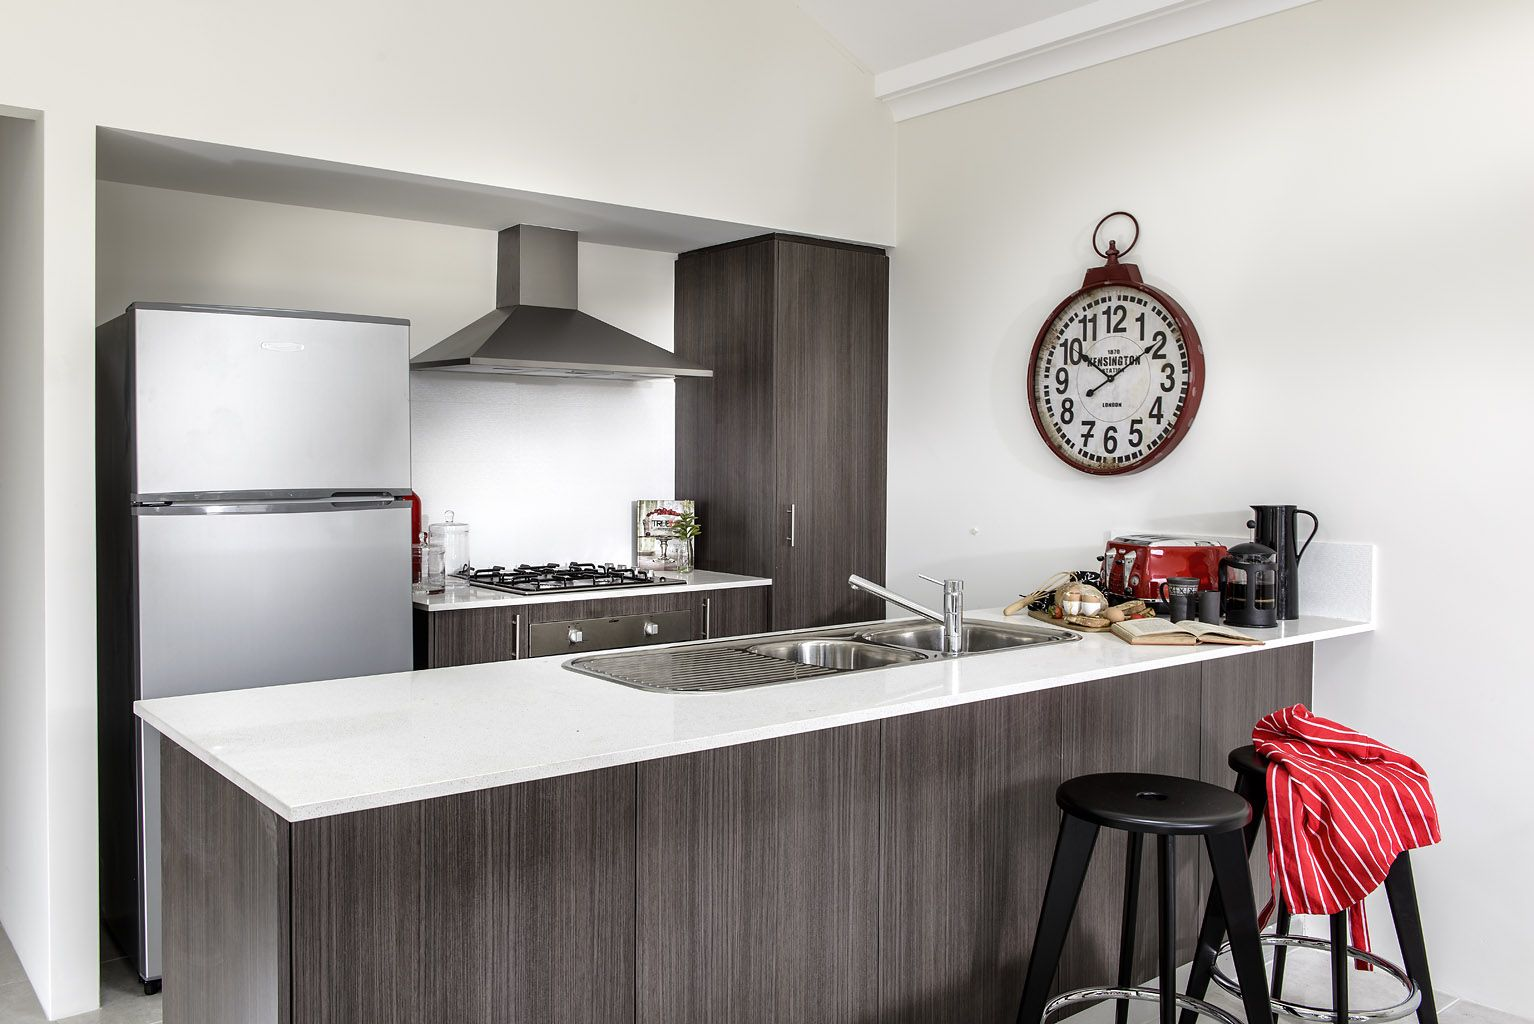 Homebuyers Centre - Flute (Brabham) Display Home Kitchen | Own Your ...